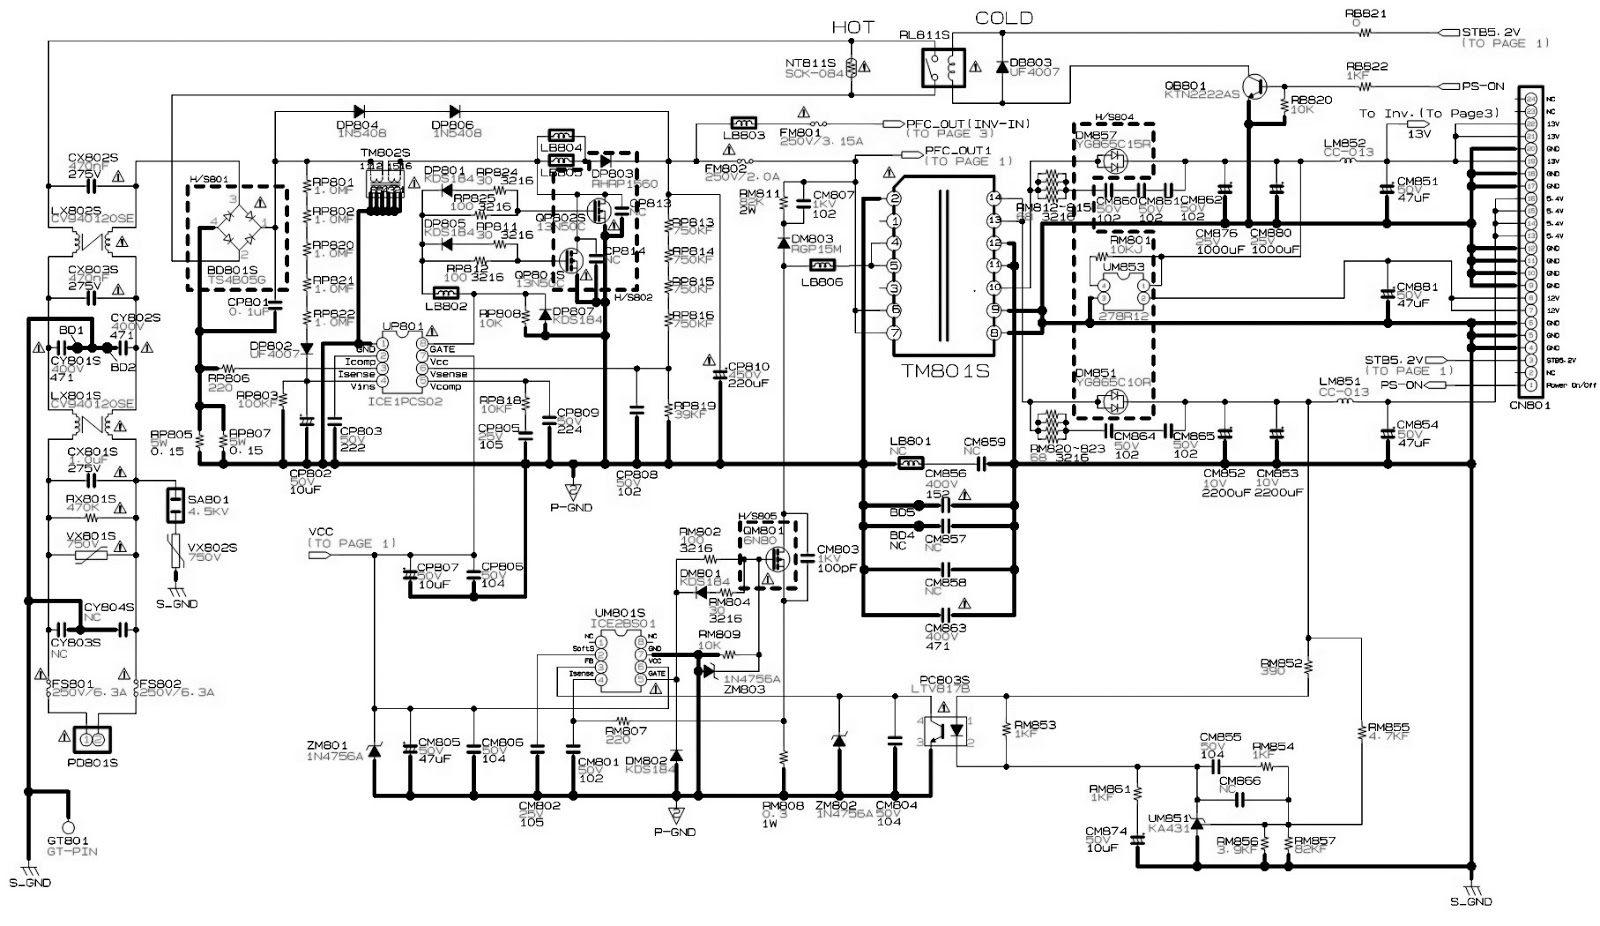 DIAGRAM] Wiring Diagram Tv Mobil FULL Version HD Quality Tv Mobil -  TASKDIAGRAM.ICMONTECCHIARONCA.ITtaskdiagram.icmontecchiaronca.it